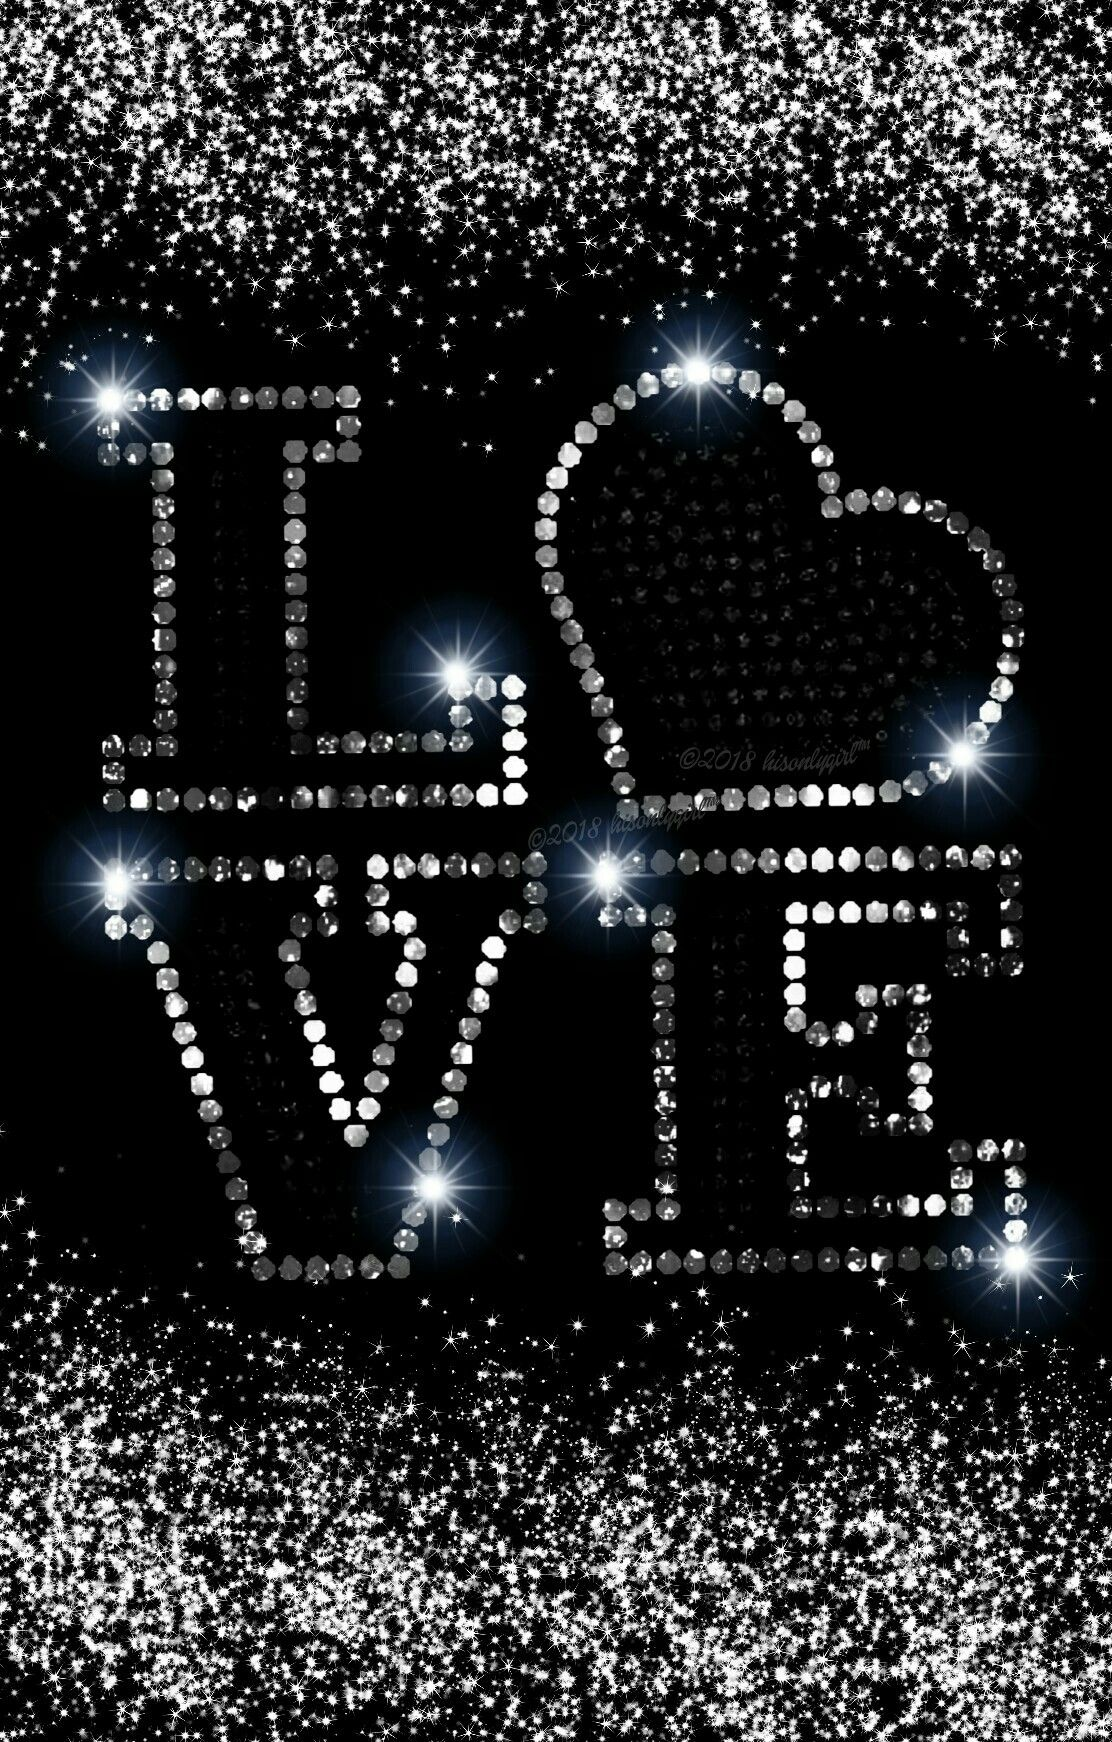 Black And Silver Glitter Wallpaper I Created For Cocoppa Font